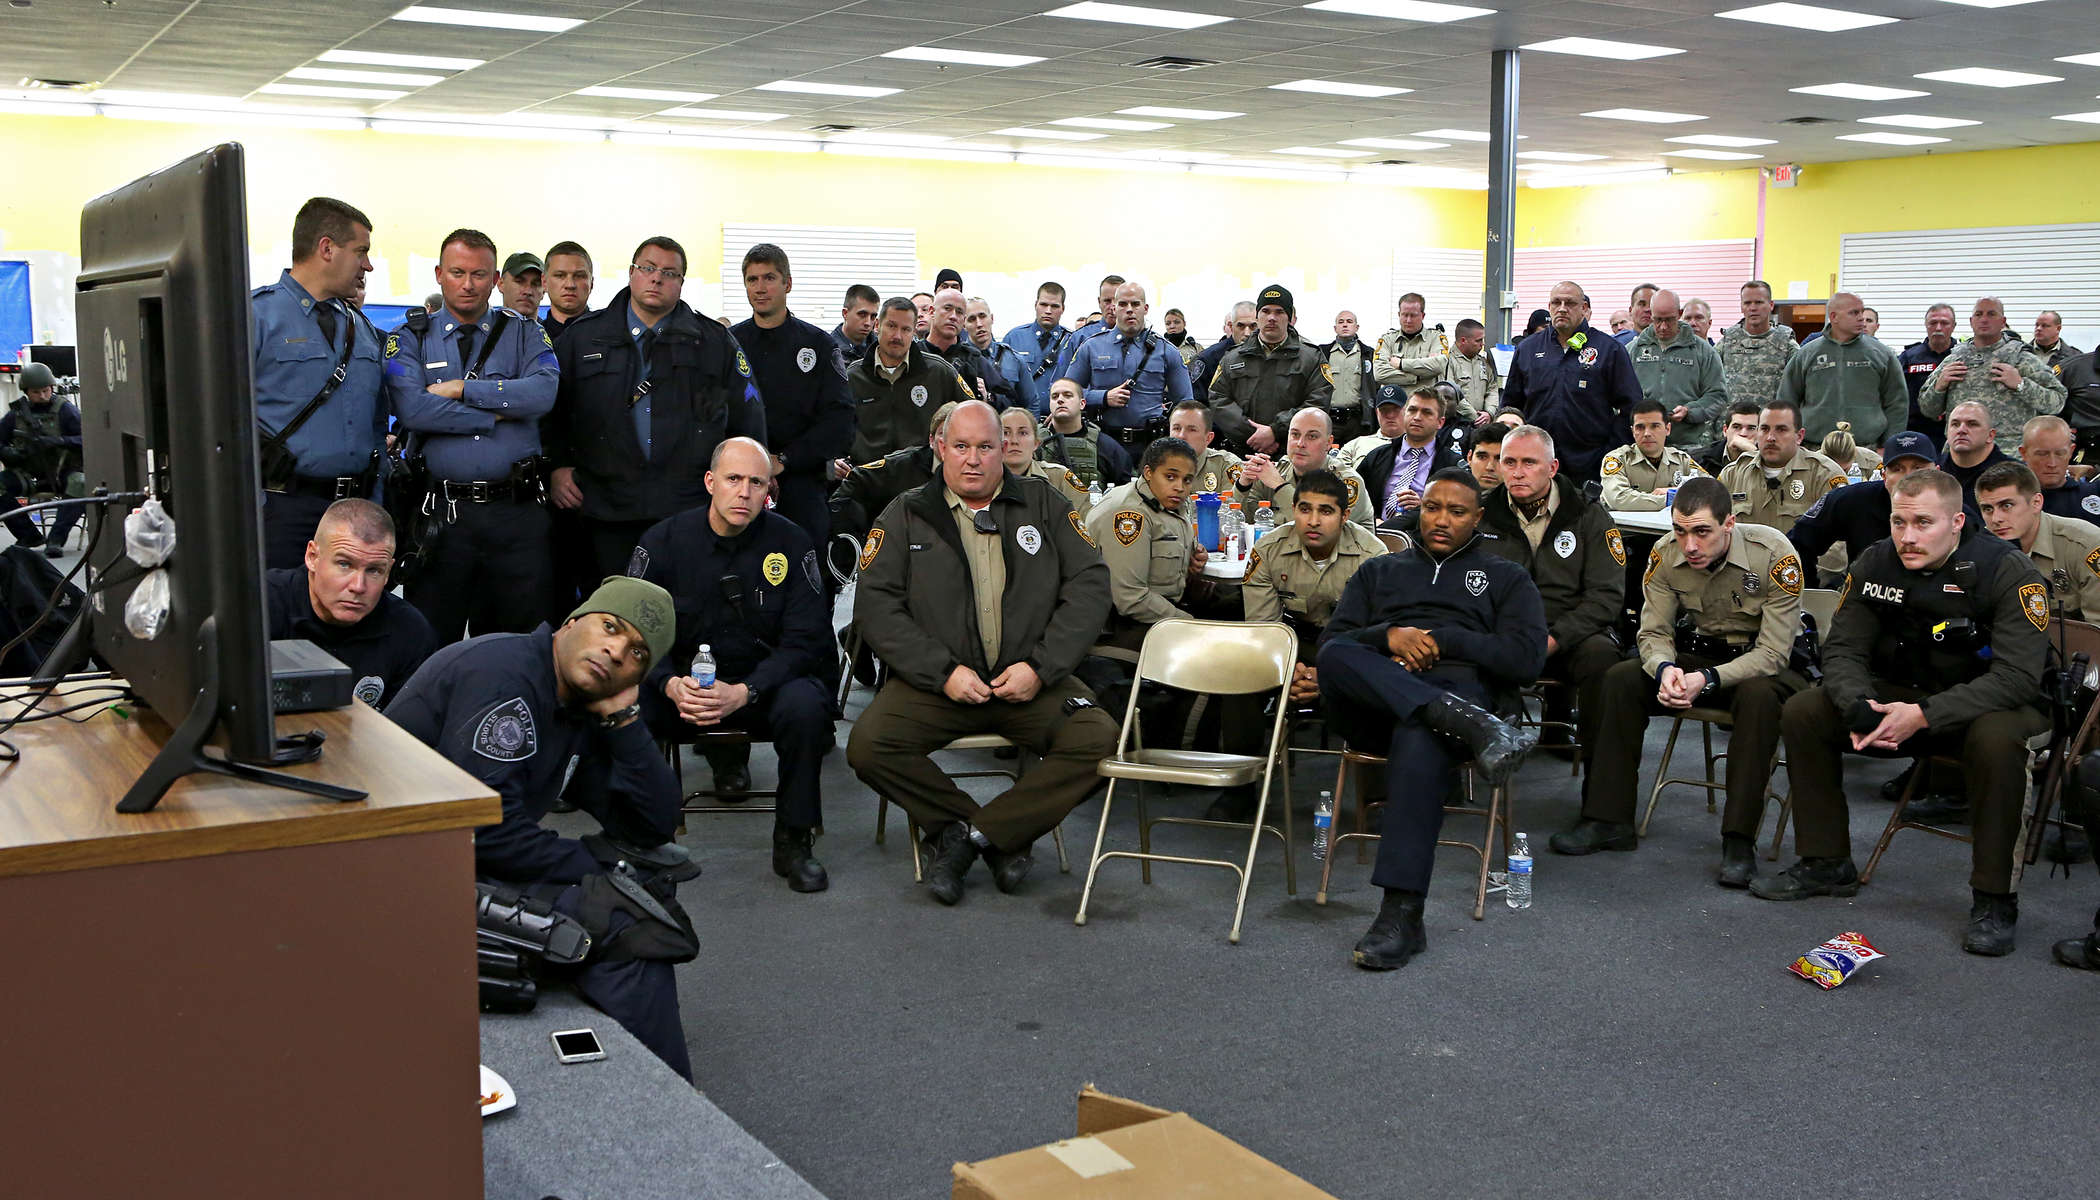 Police officers gather around a television in the unified commend center at the Westfall Plaza shopping center to watch the announcement of the grand jury's decision to not file charges against Darren Wilson in the fatal shooting of Michael Brown on Monday, Nov. 24, 2014. Photo By David Carson, dcarson@post-dispatch.com